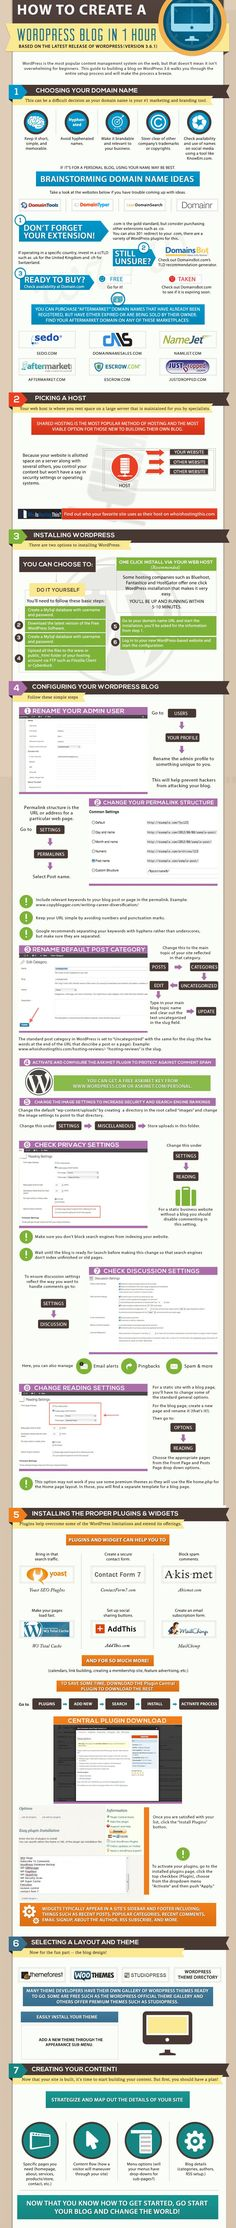 How to Create a WordPress Blog in 1 Hour #infographic #Wordpress #Blog